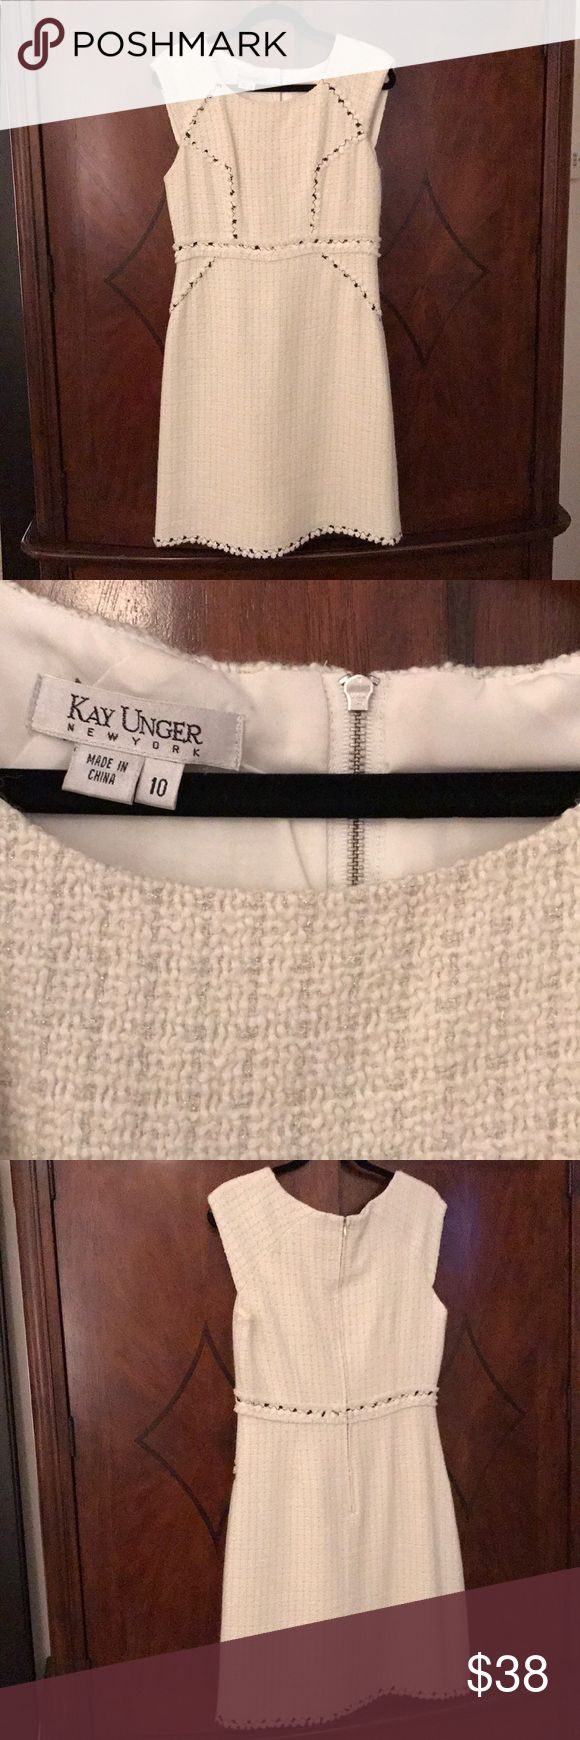 "Kay Unger NWOT White Boucle Dress Sz 10 NWOT!! Beautiful Kay Unger creamy white boucle sheath dress with black accents. Measures 36"" from back of neck to bottom hem. From a non smoking home. Reasonable offers considered! Thank You! Kay Unger Dresses Midi"